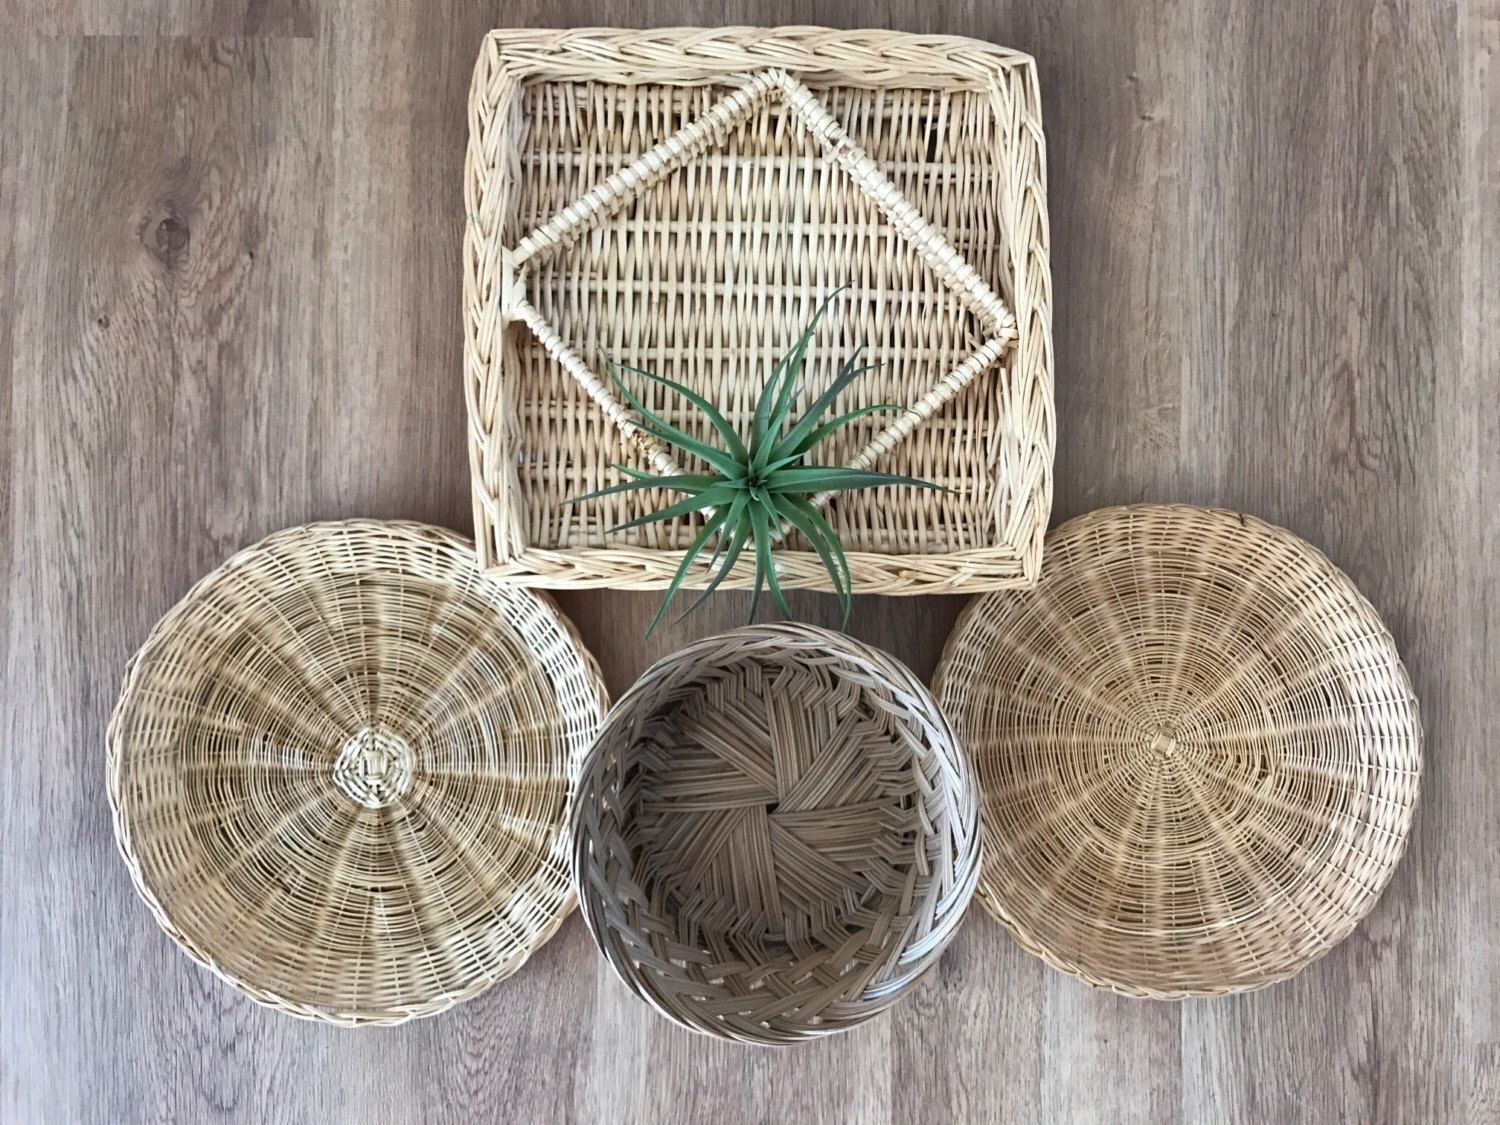 Boho Vintage Ser Of Wicker Rattan Woven Wall Hanging Baskets Within Latest Woven Basket Wall Art (Gallery 19 of 20)